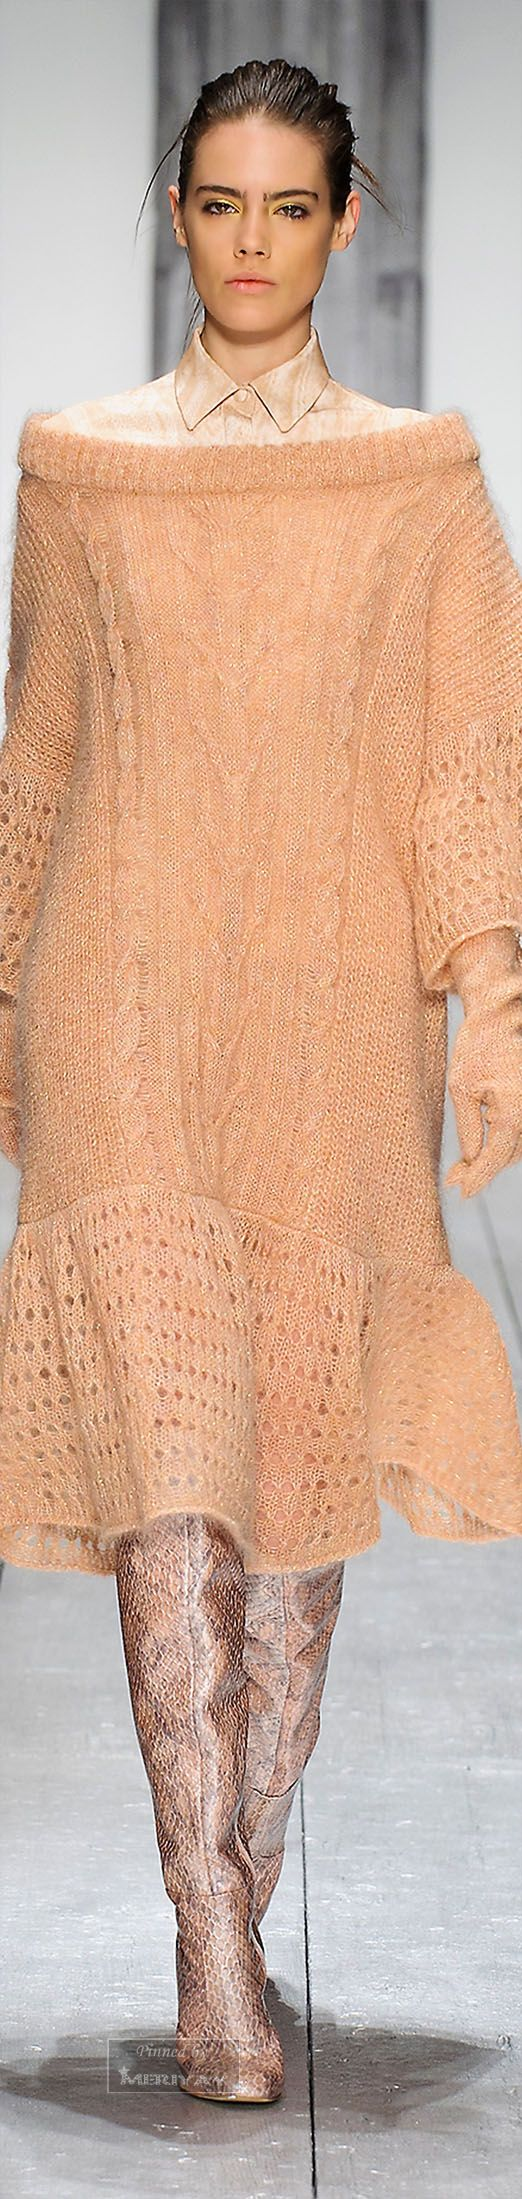 Laura Biagiotti.15 knit dress women fashion outfit clothing style apparel @roressclothes closet ideas